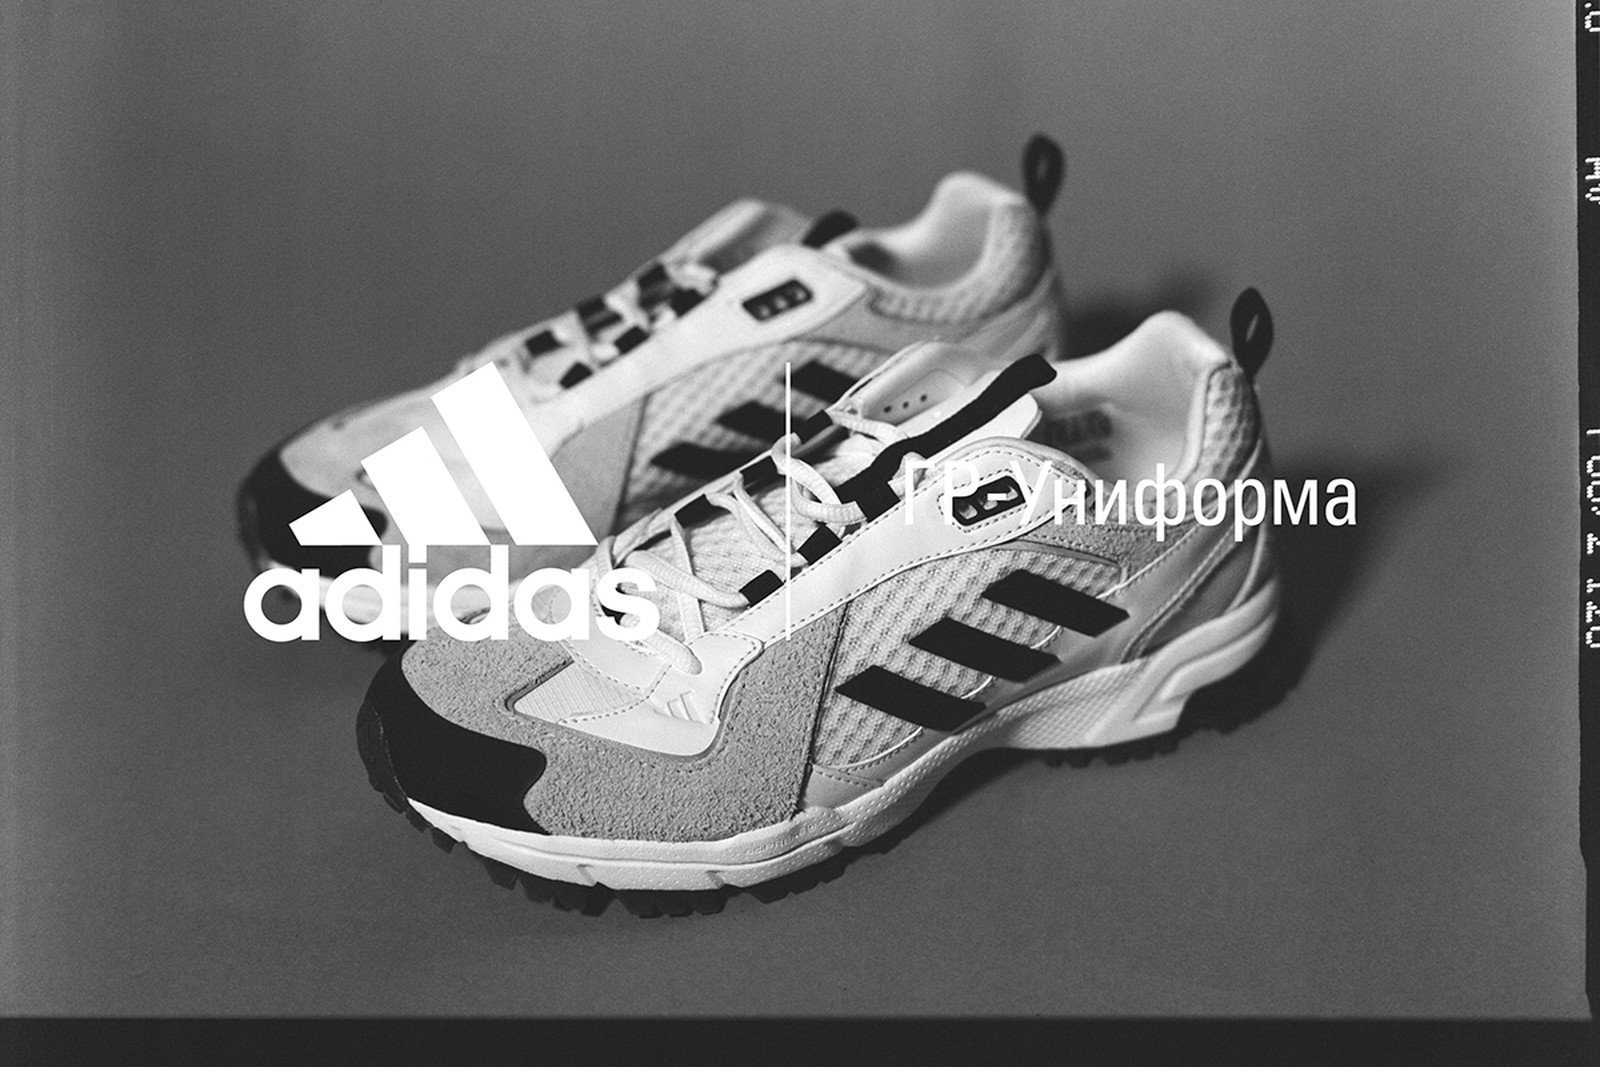 Gosha Rubchinskiy Returns with New adidas Project